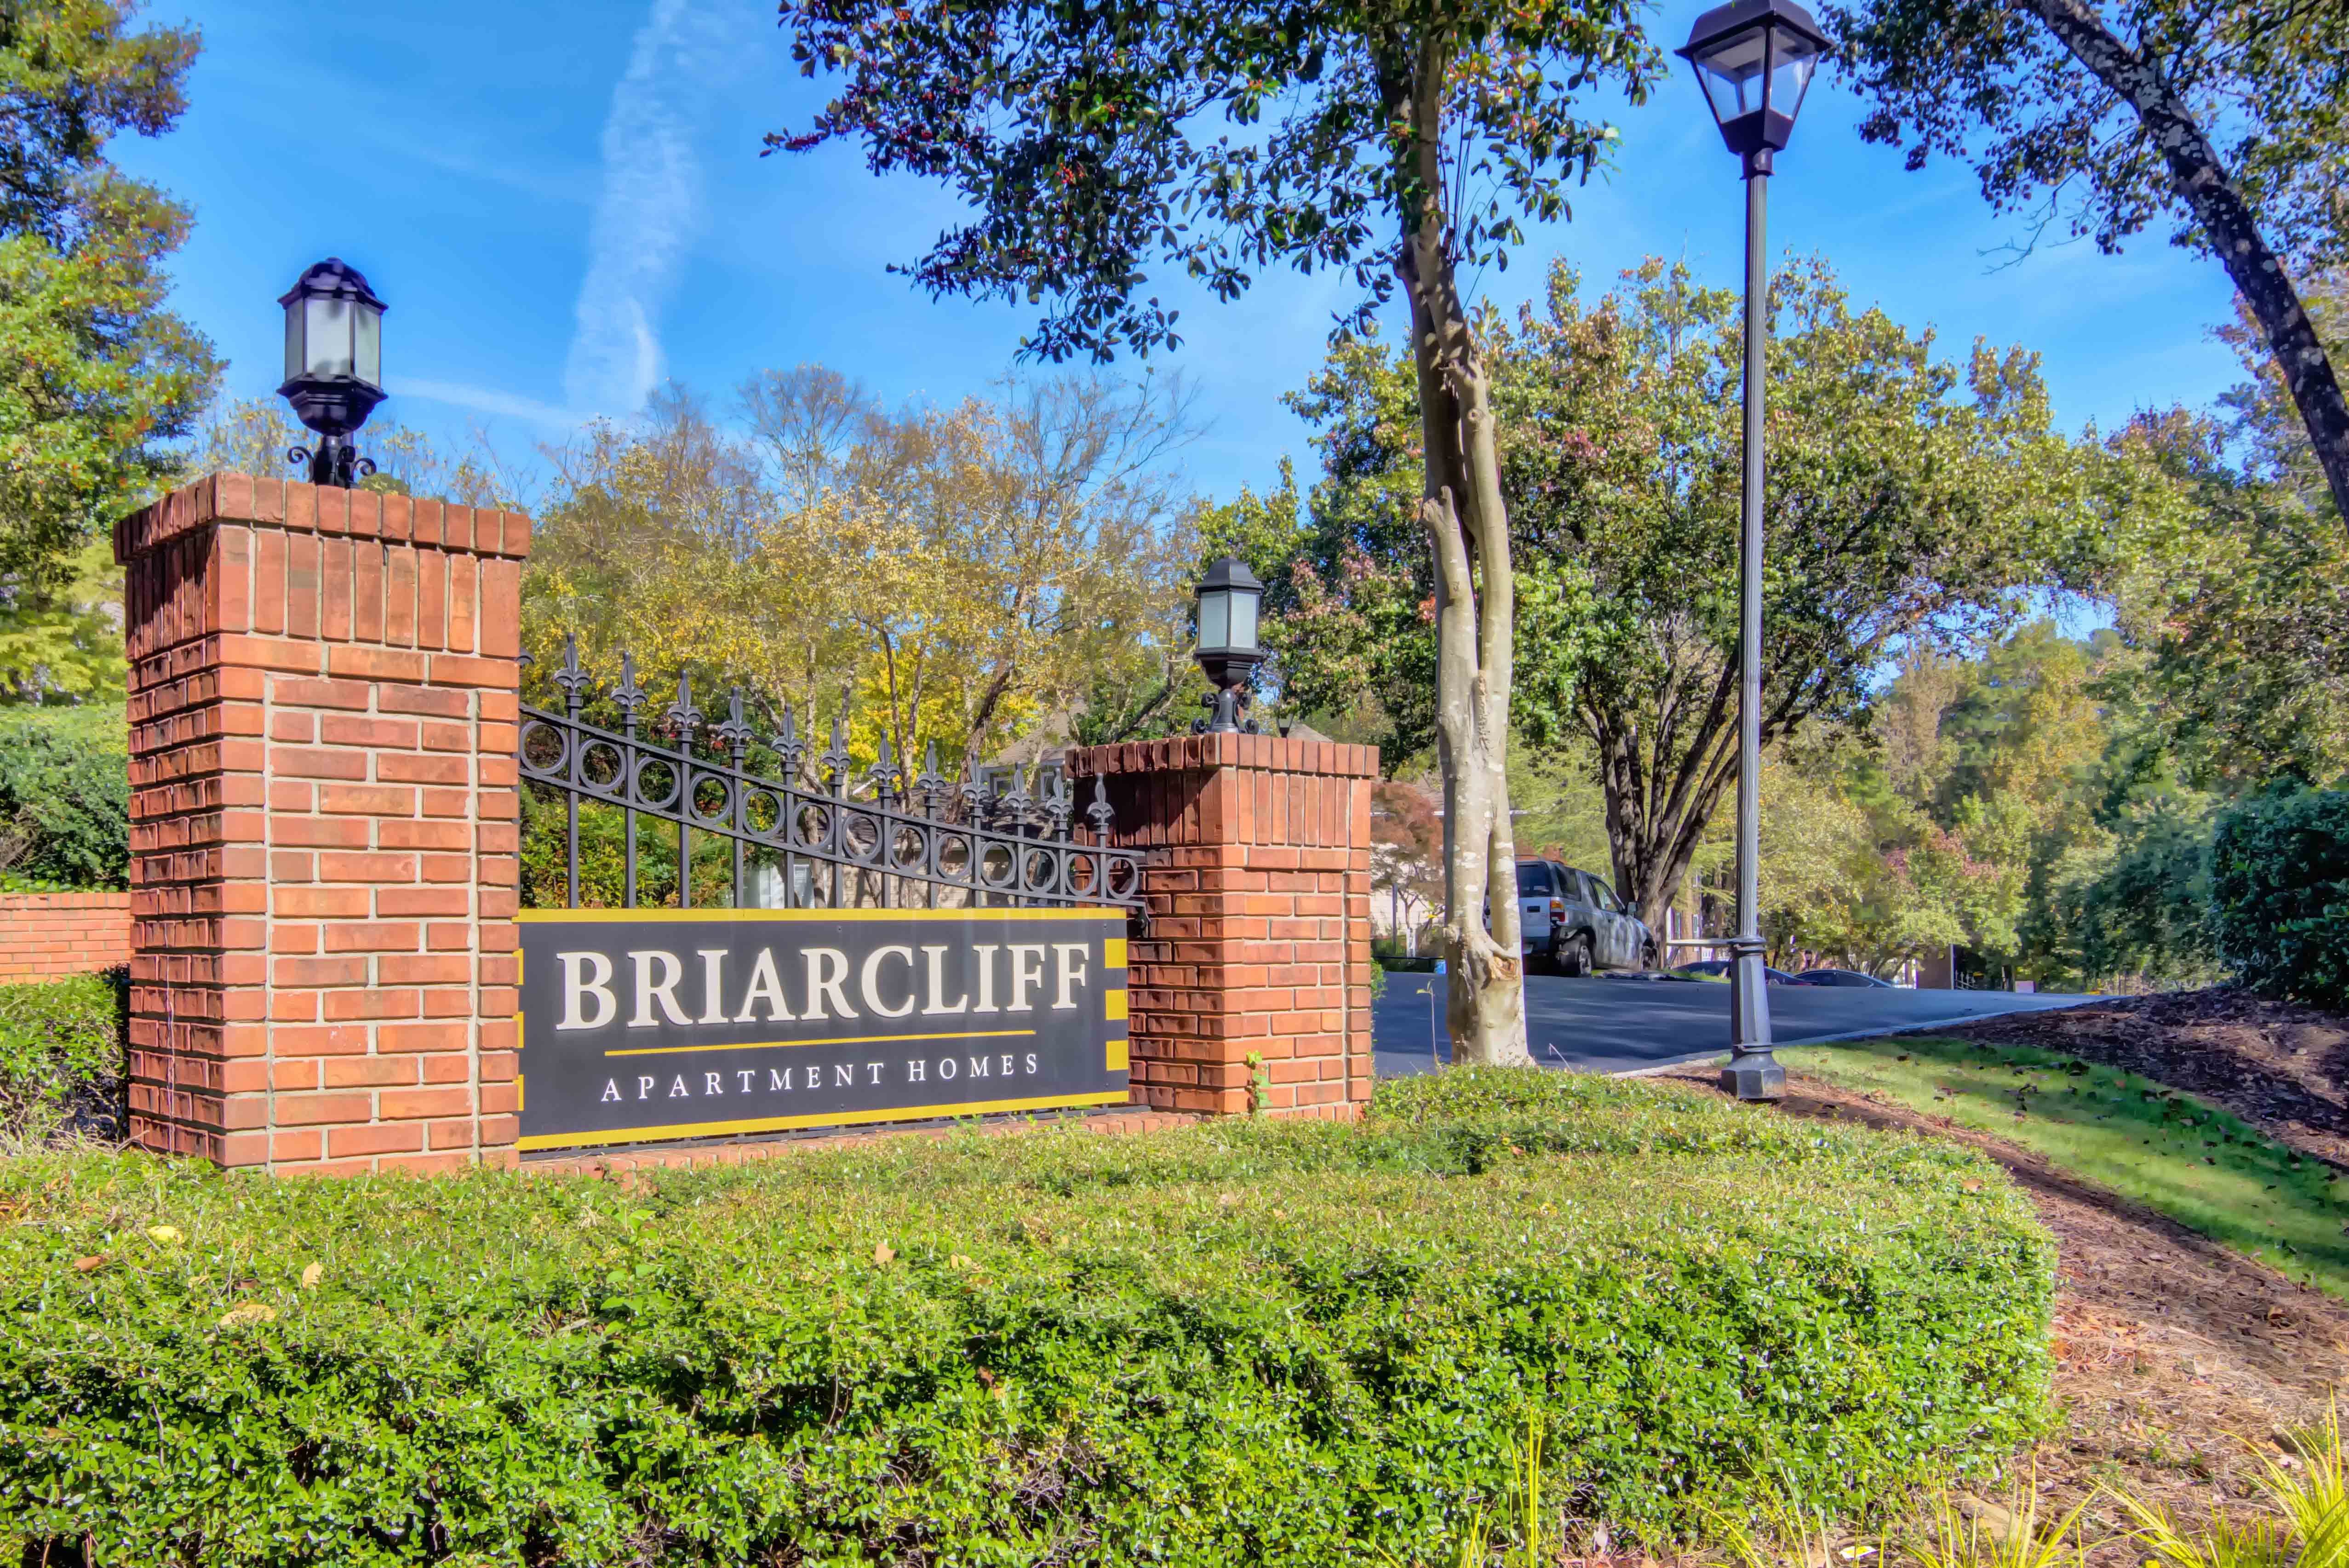 Briarcliff Apartments